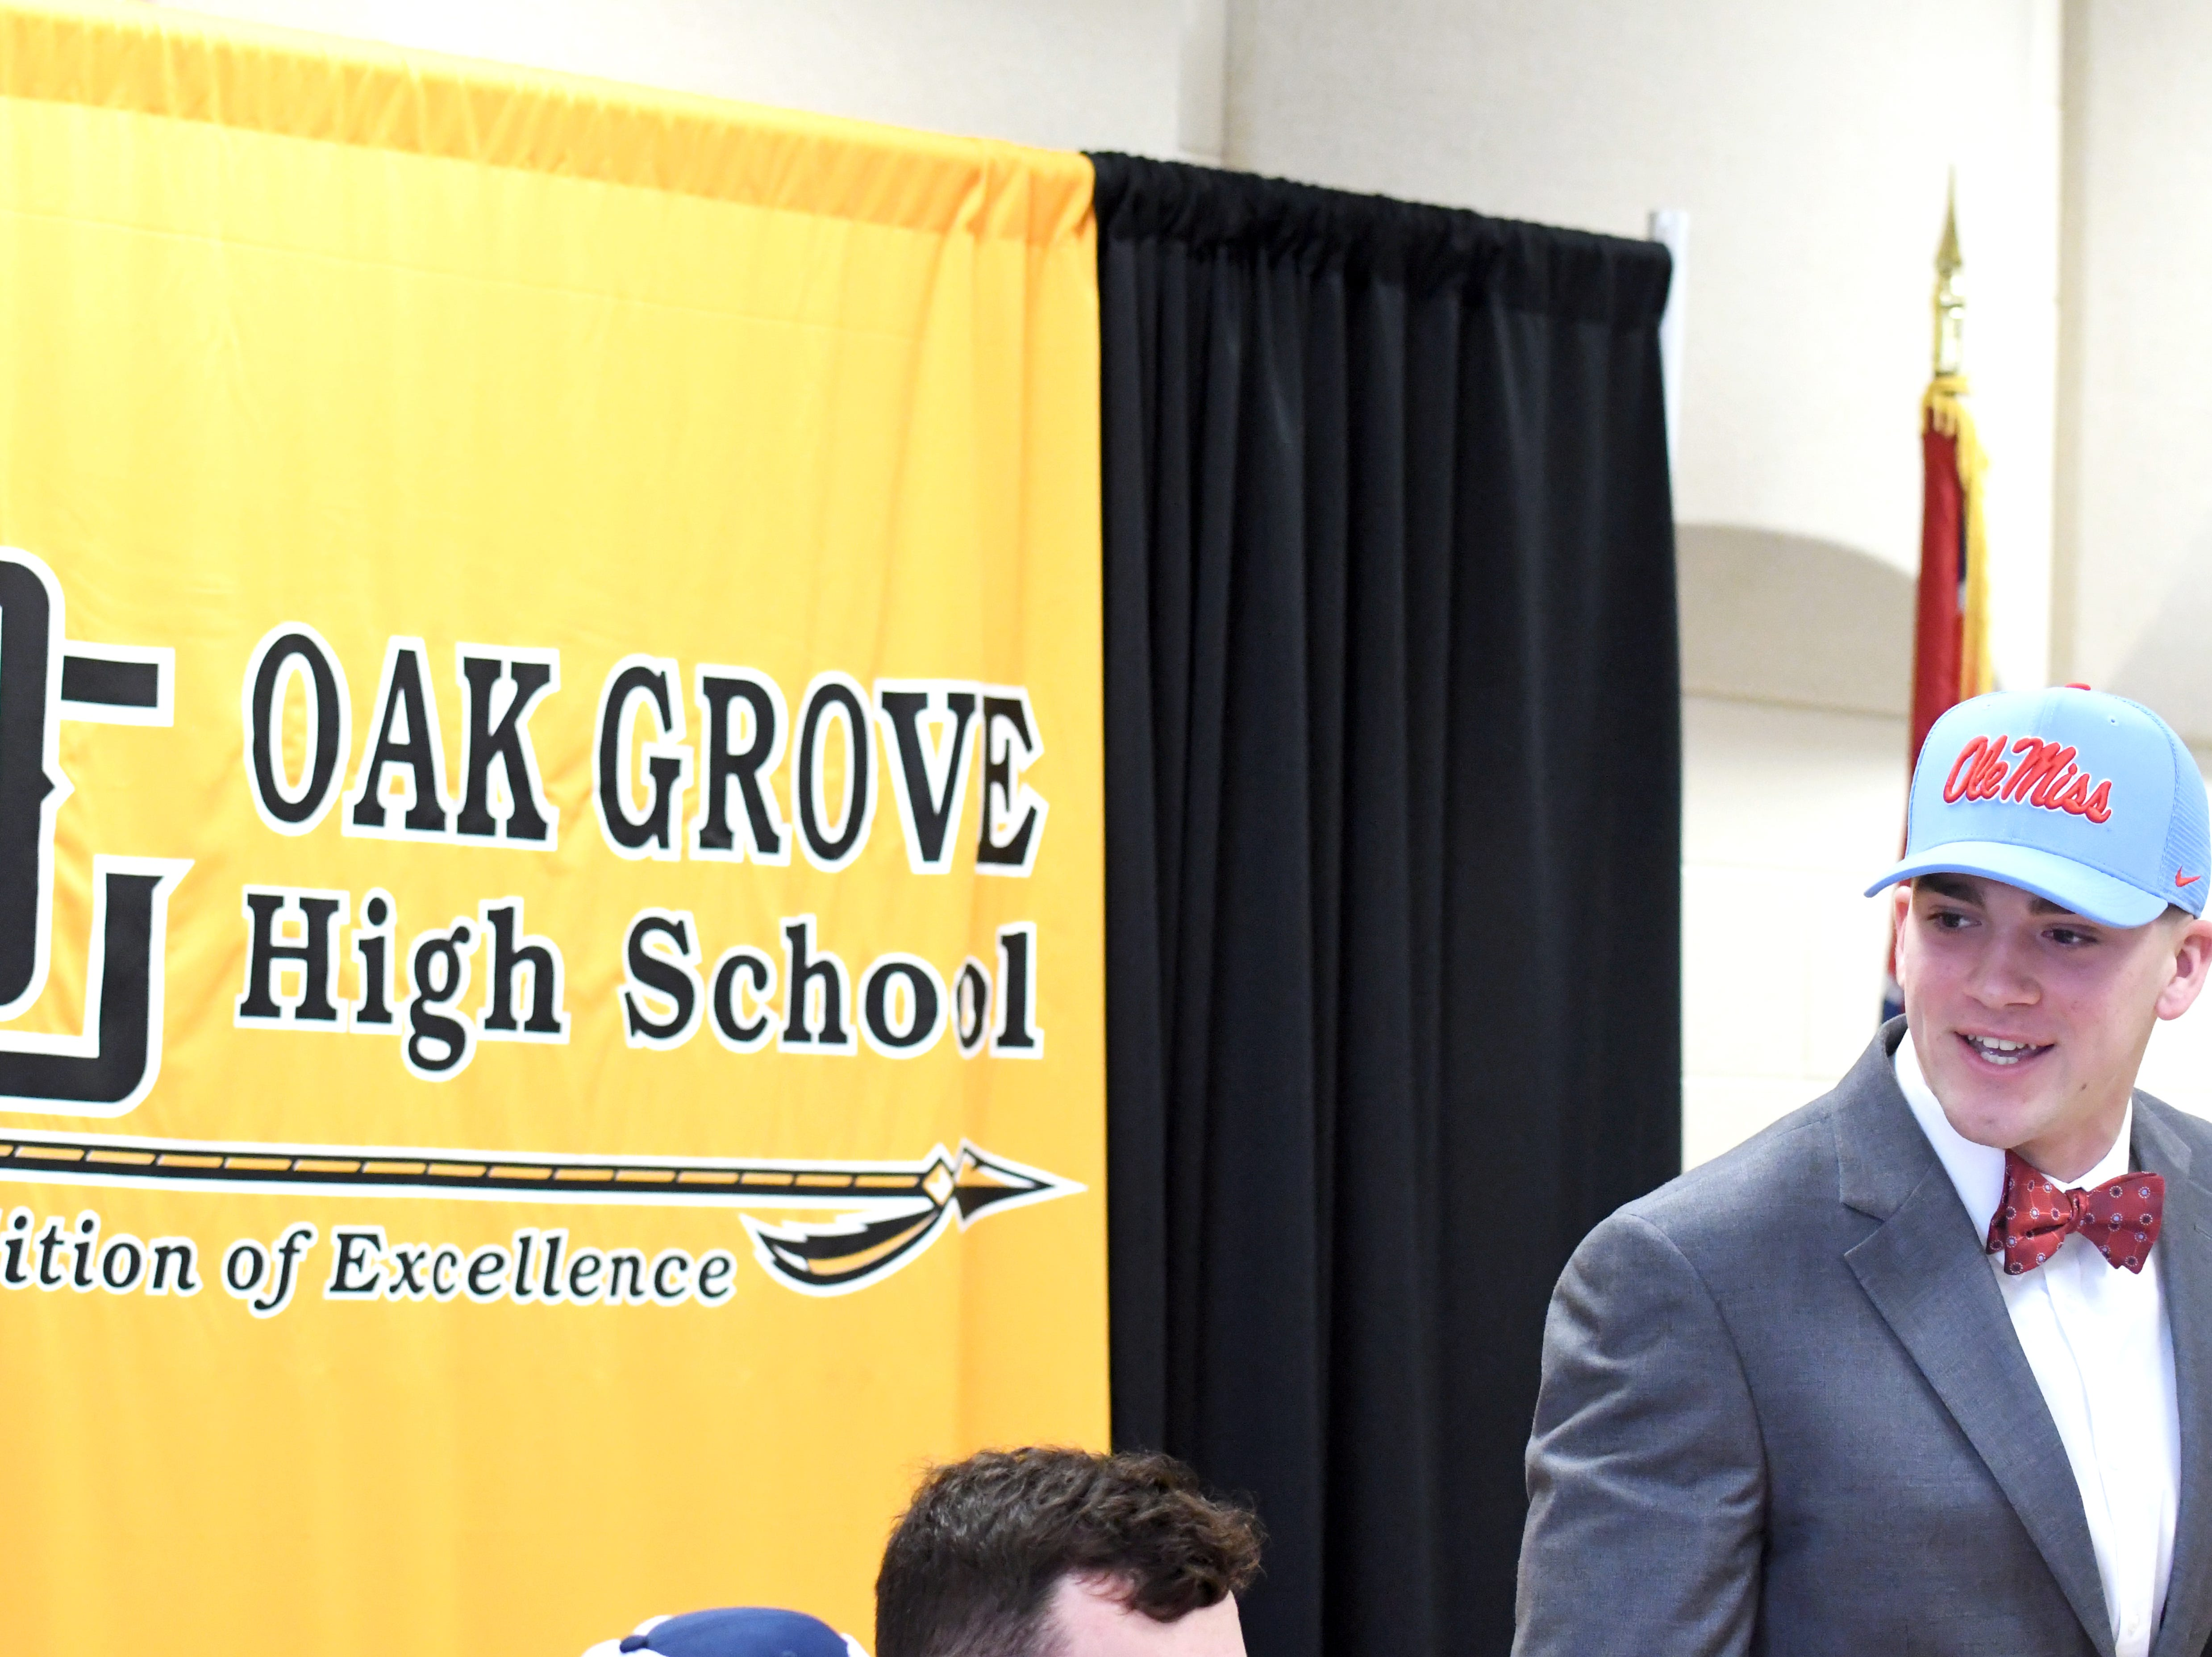 Oak Grove quarterback John Rhys Plumlee committed to Ole Miss on National Signing Day to play both football and baseball.